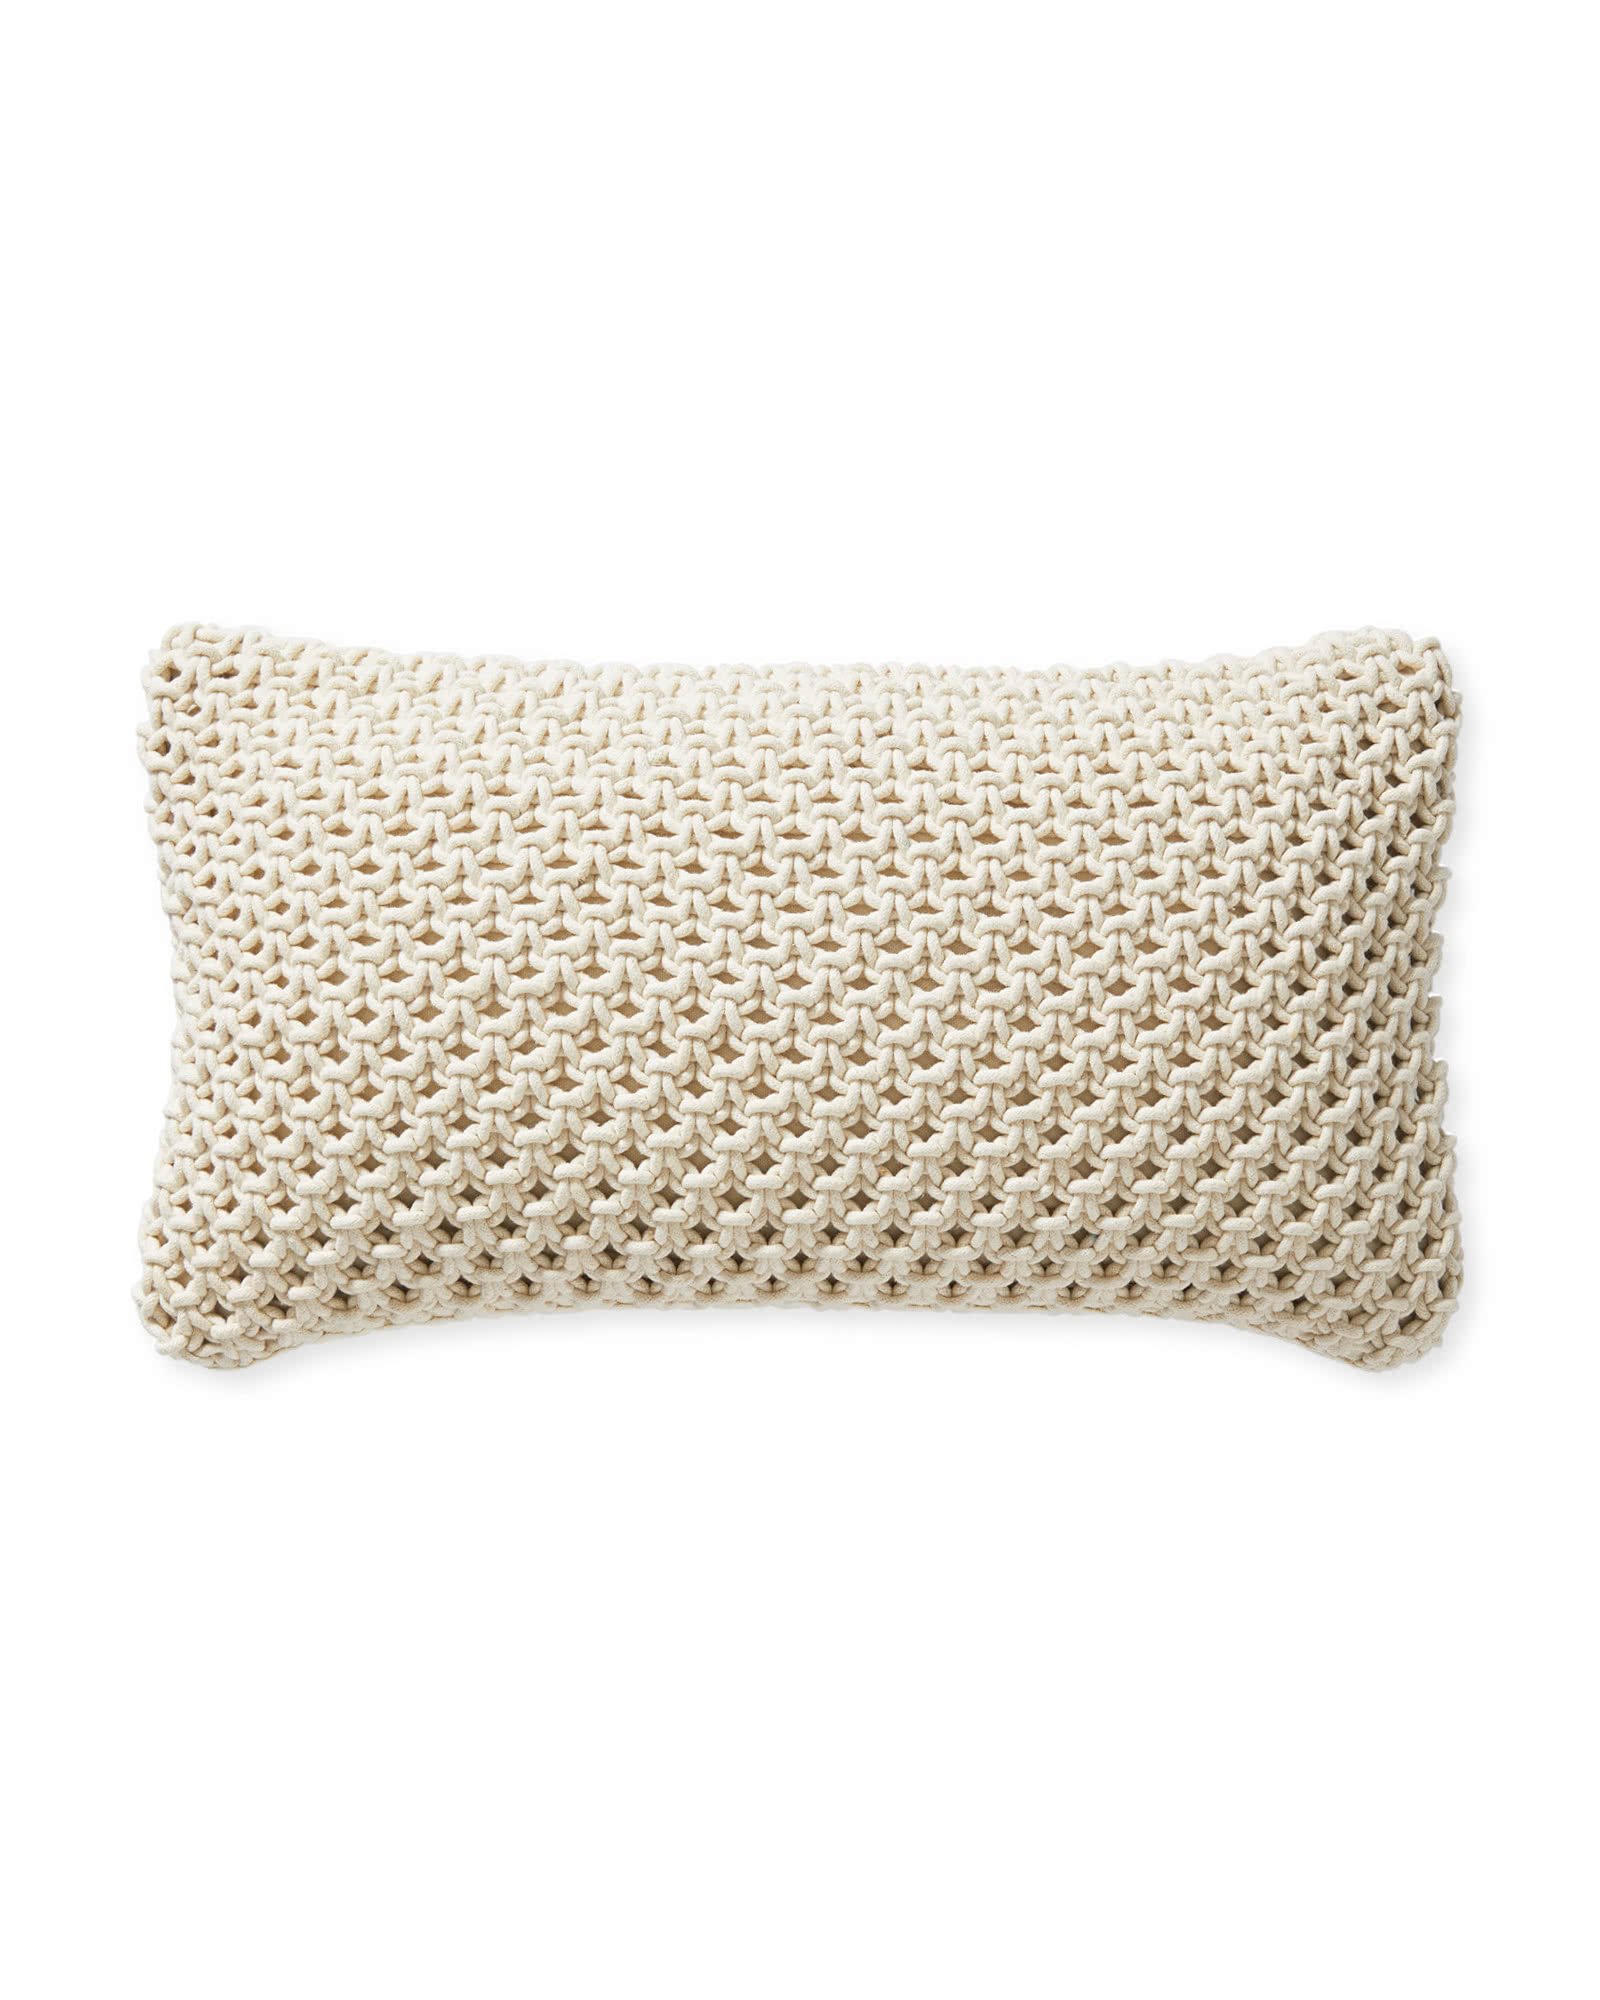 Gabriola Pillow Cover, White